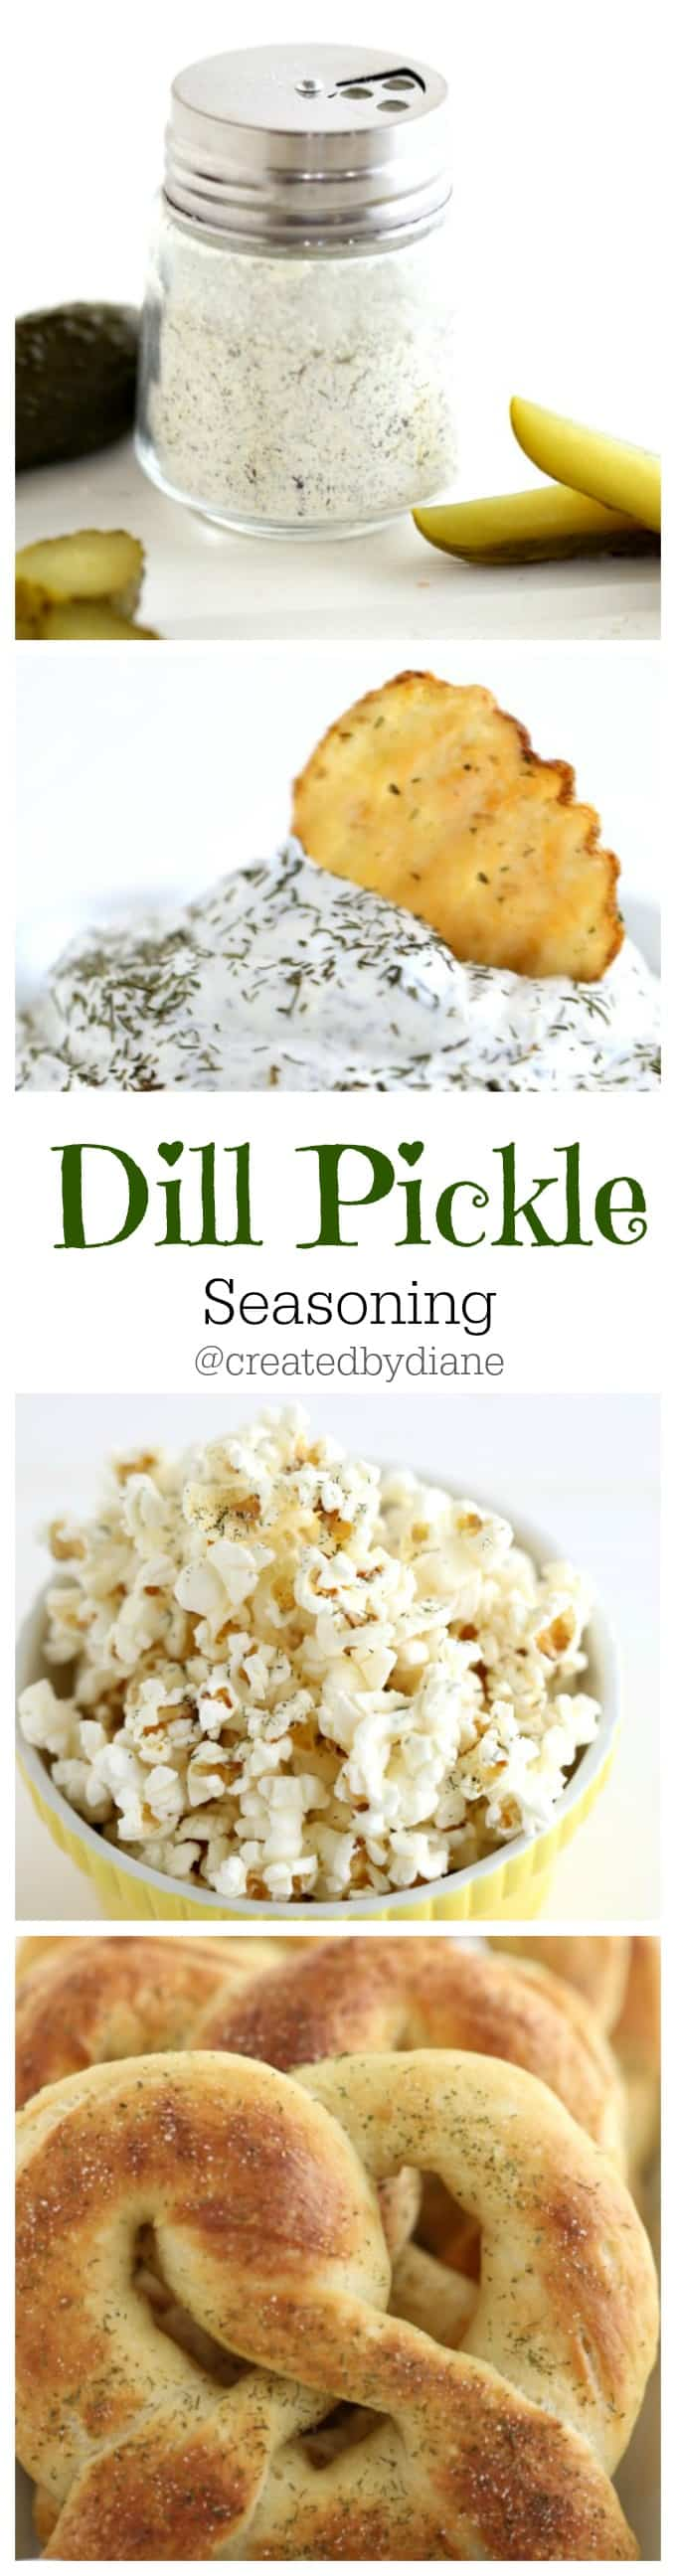 Dill Pickle recipes @createdbydiane